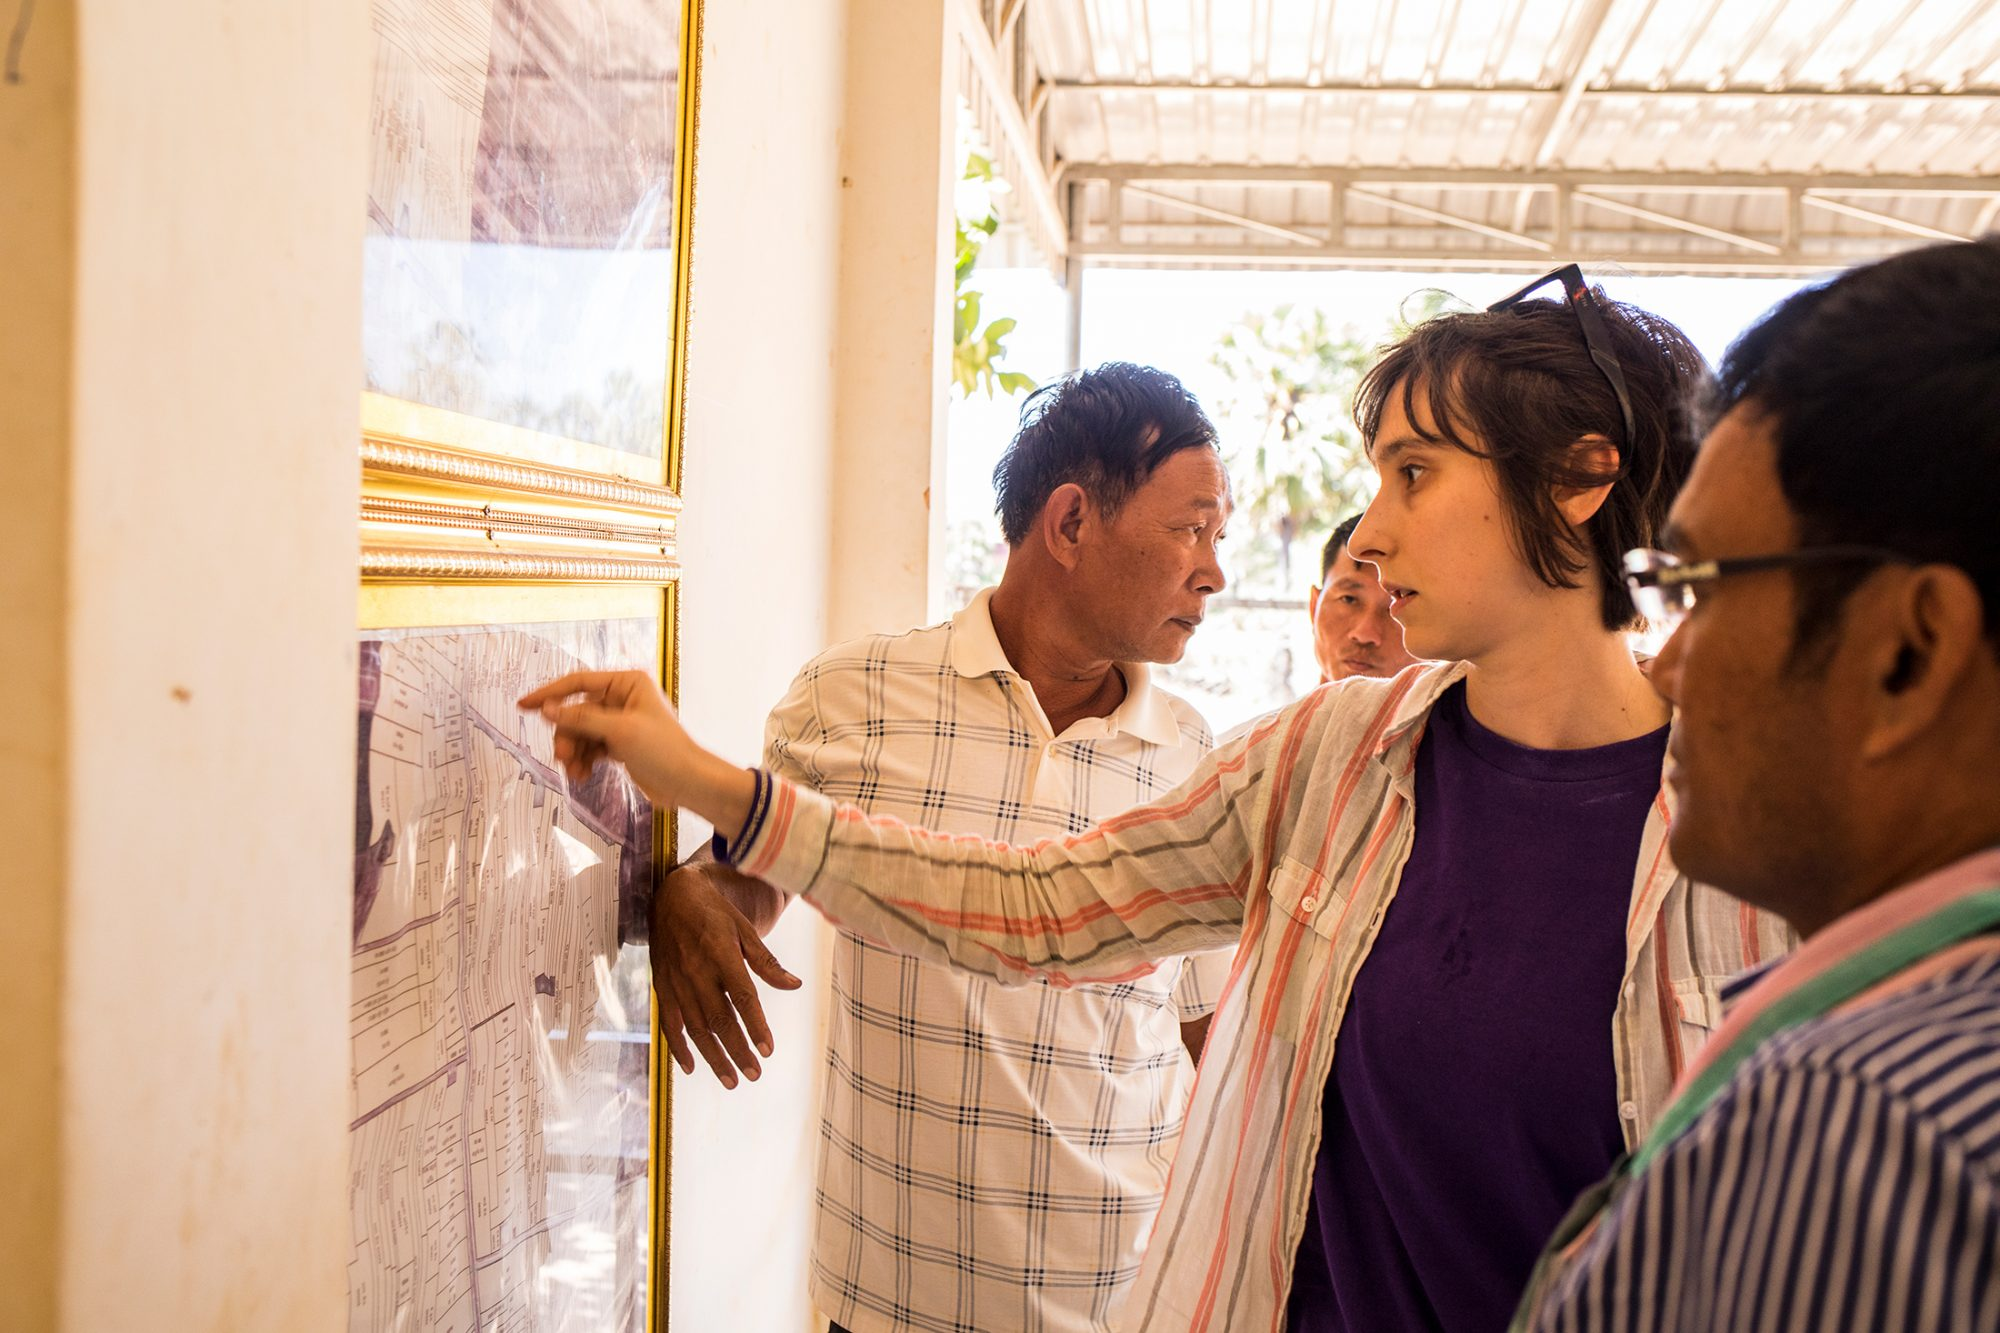 Three Cambodian farmers and Yasmine gather around a faded purple map posted on the wall